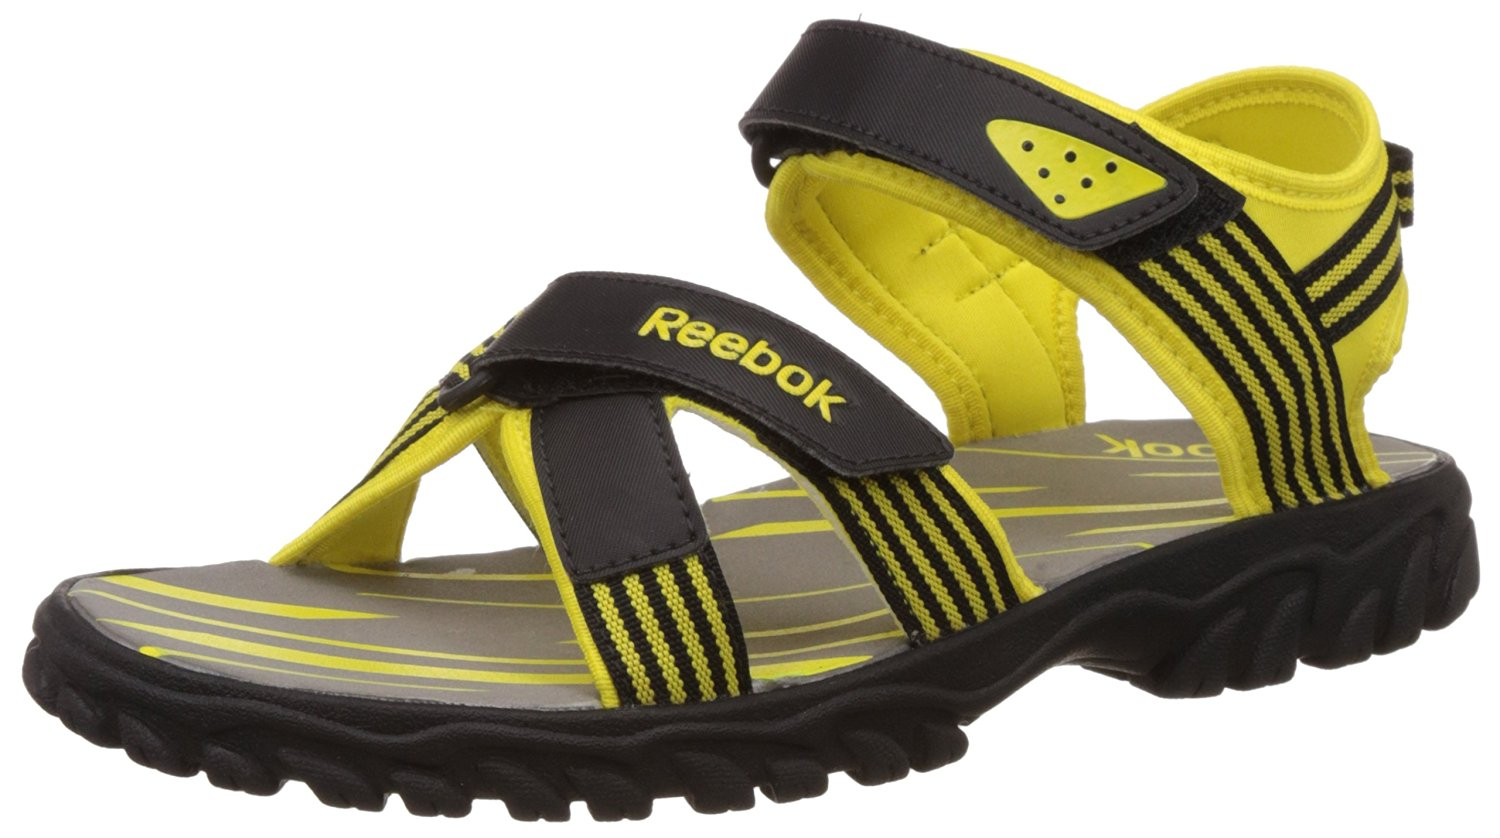 5625fda42a422 Amazon - Buy Reebok Men s Road Connect Sandals And Floaters for Rs.629 (65%  off)